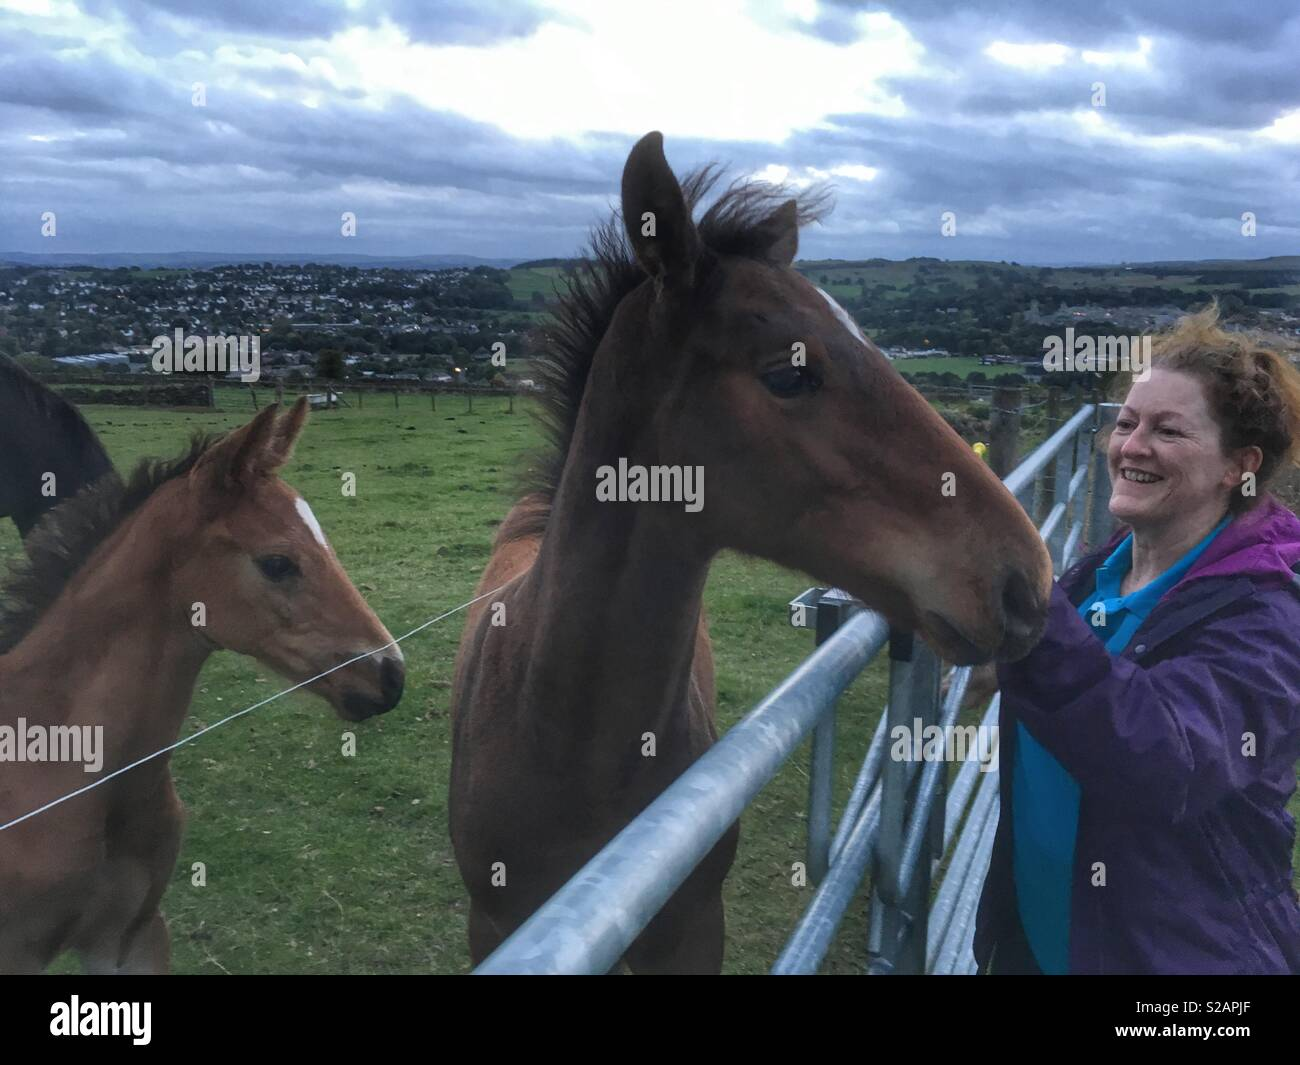 A woman greeted by two foals at the gate of a field in Guiseley West Yorkshire - Stock Image